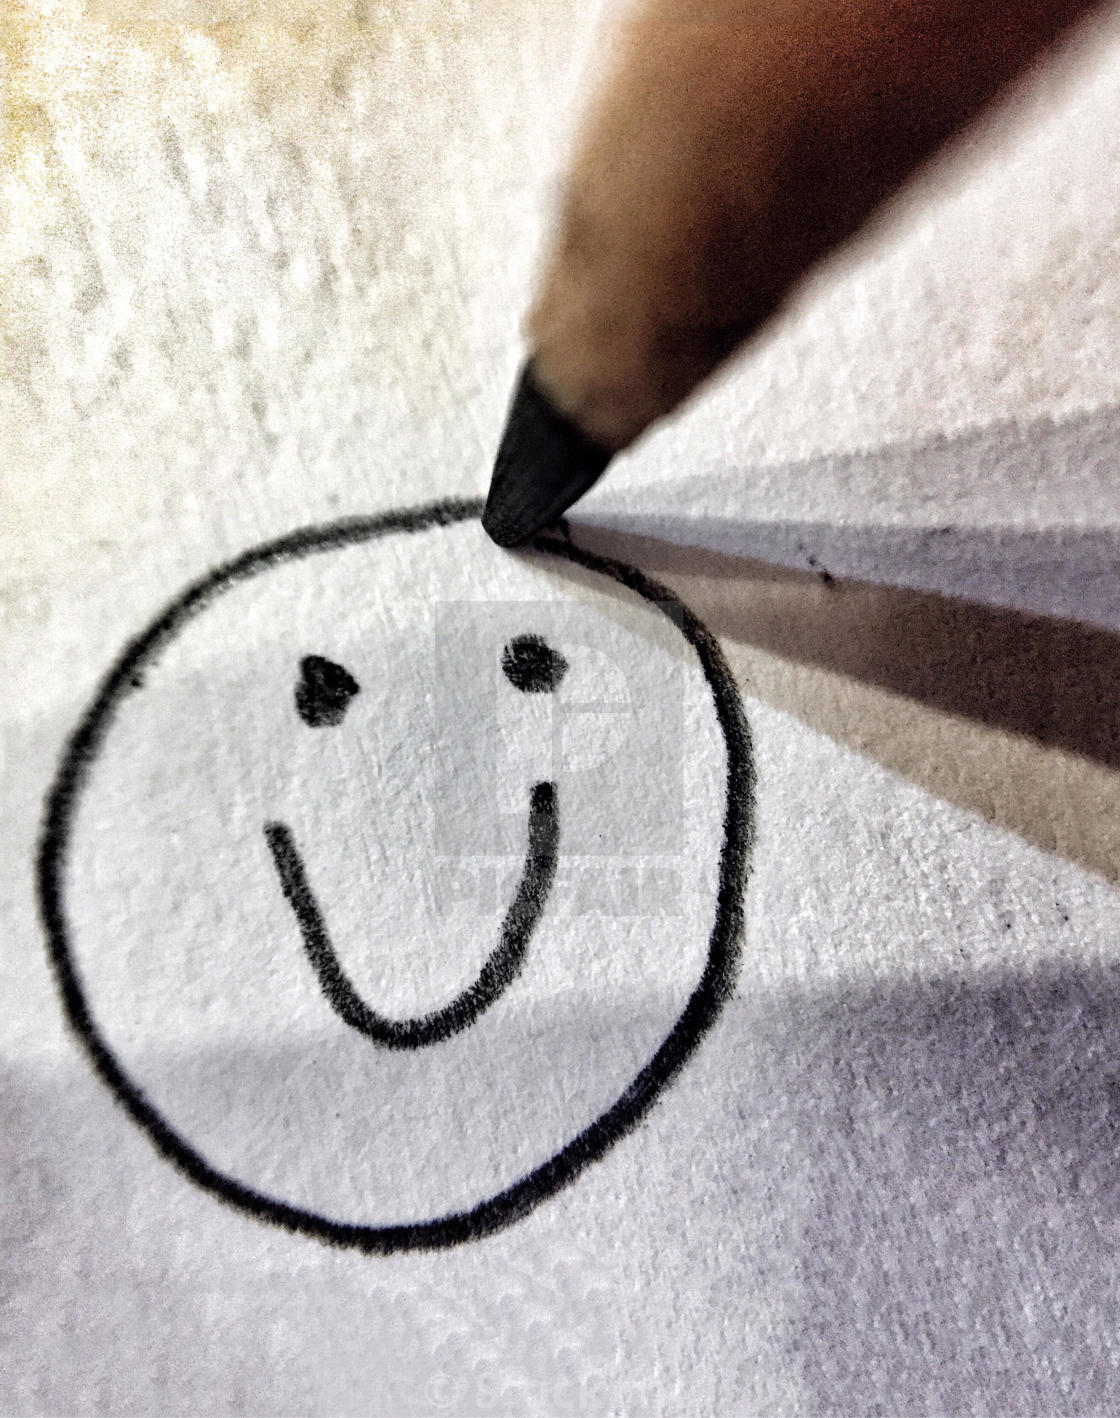 Pencil drawing of a happy smiling face stock image